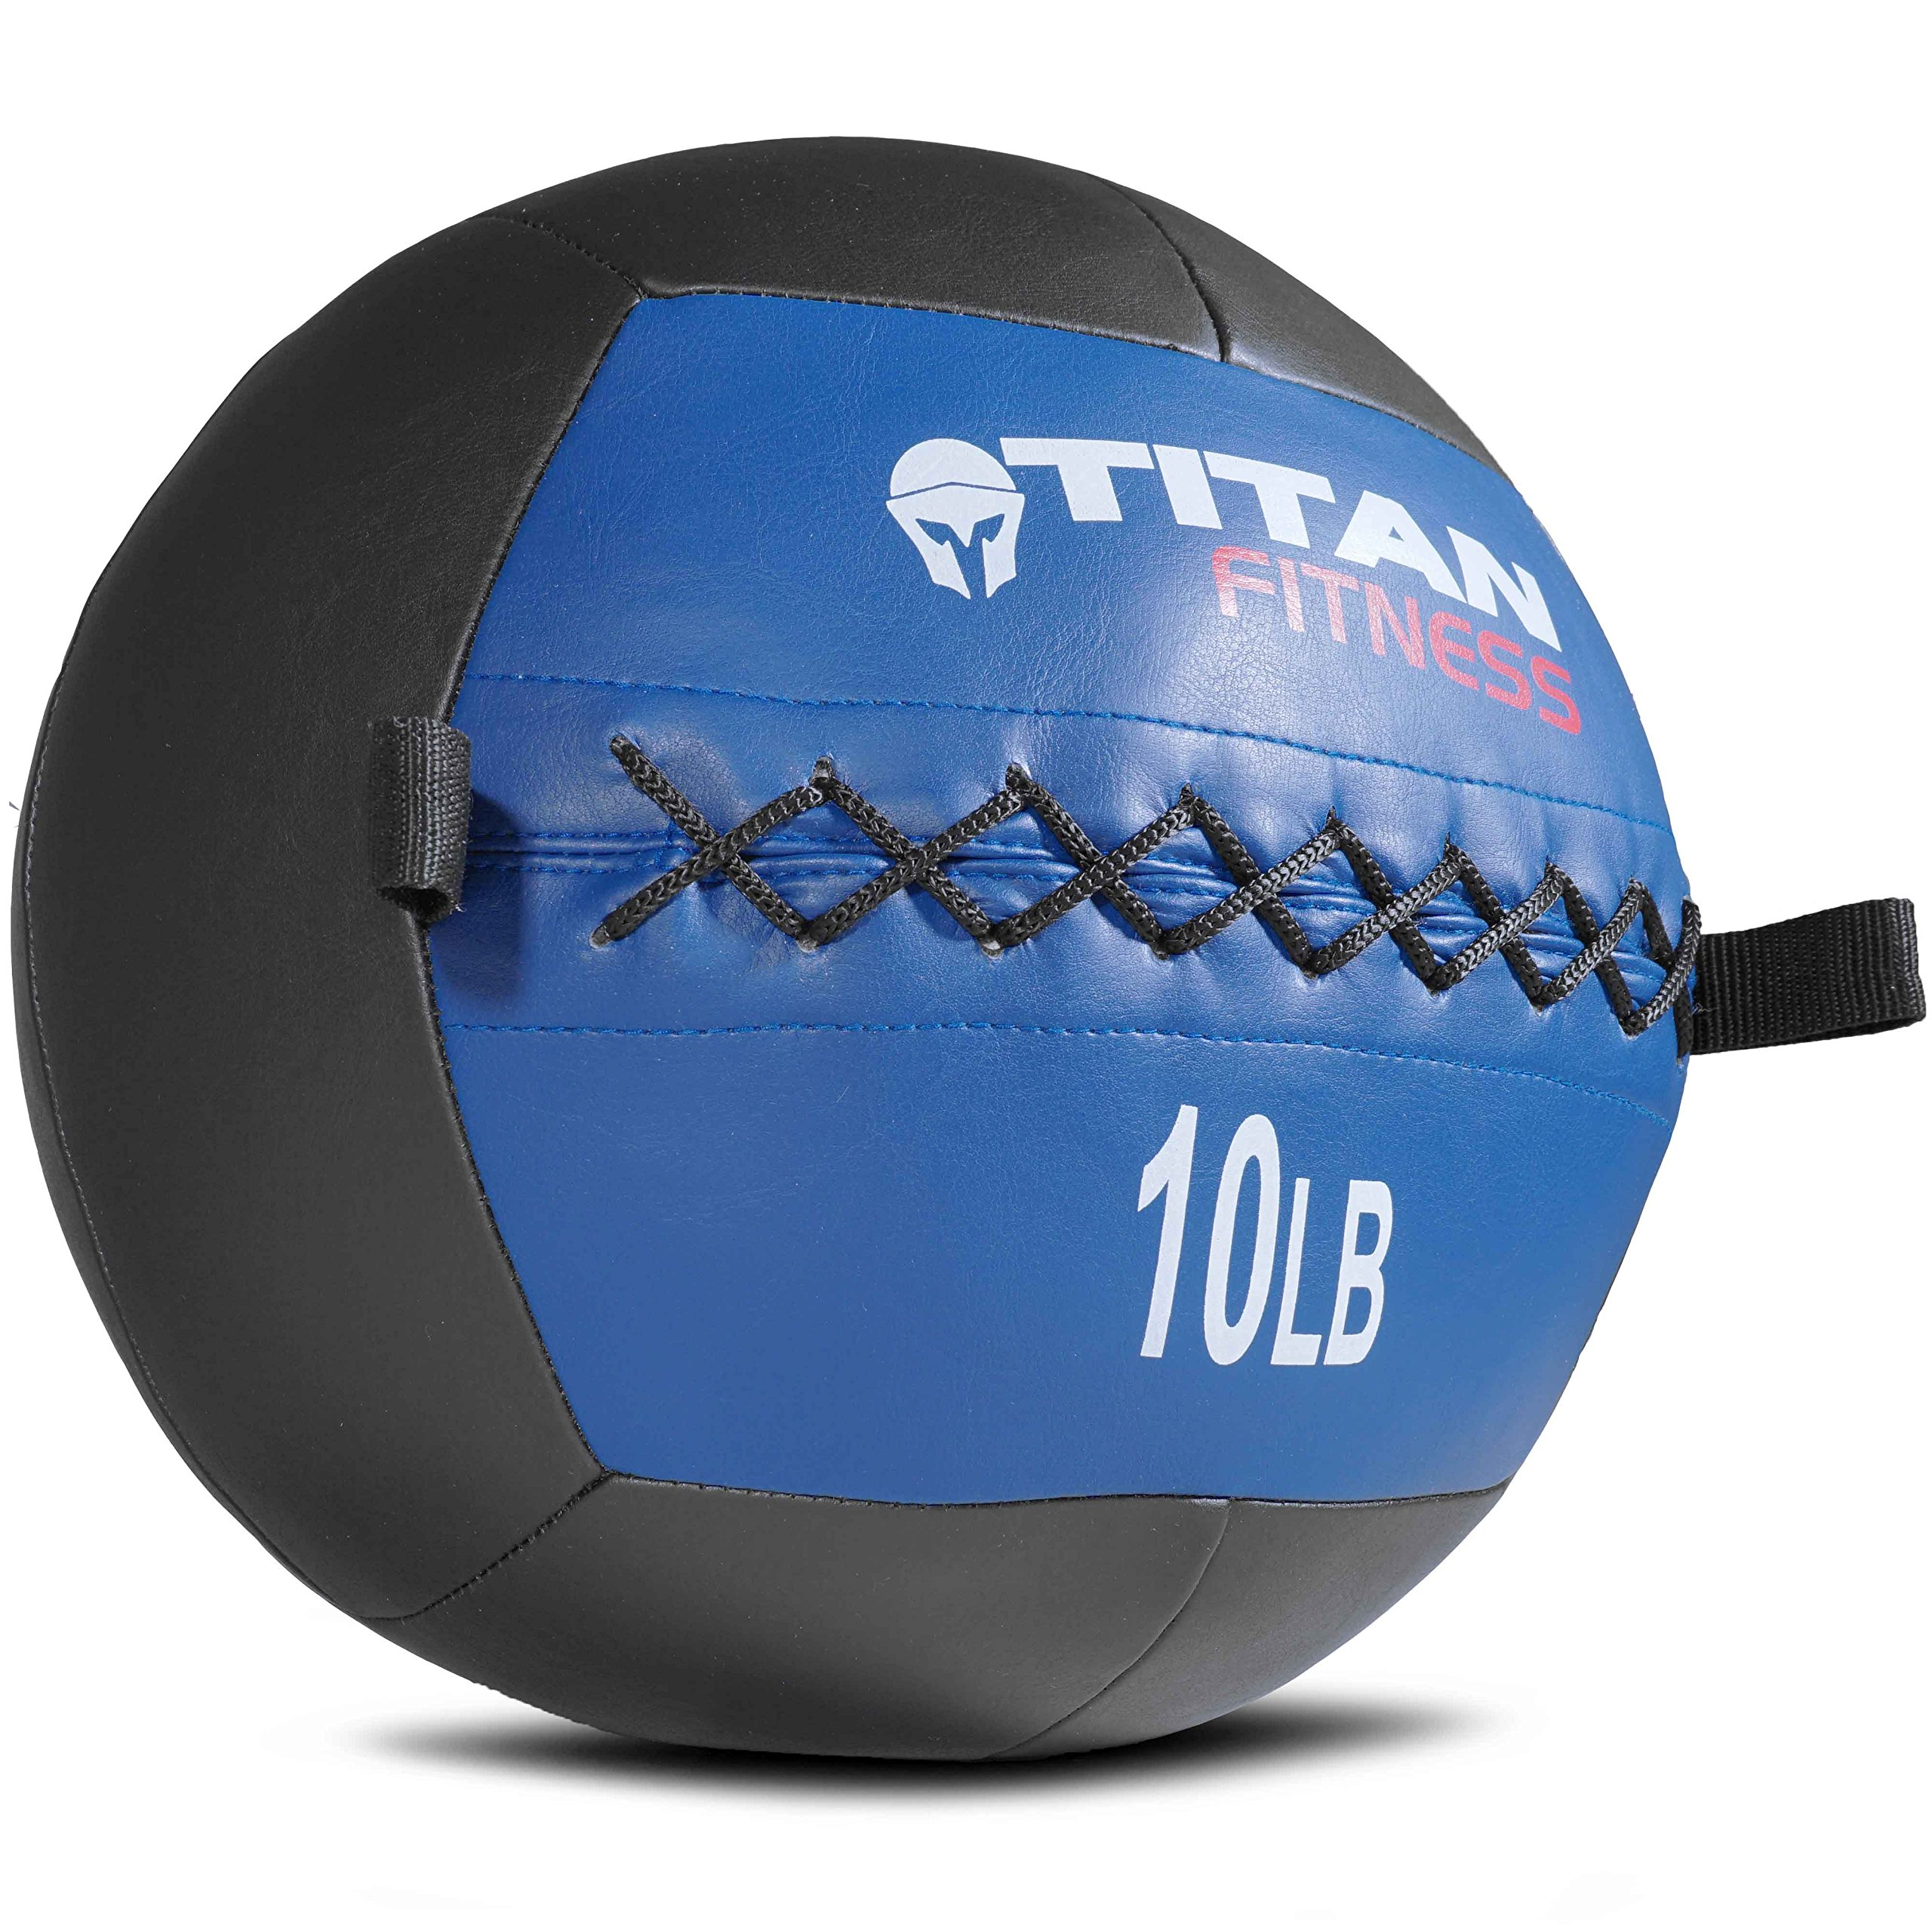 Titan 10 lb Wall Medicine Ball Core Workout Cardio Muscle Exercises Strength WOD by TITAN FITNESS